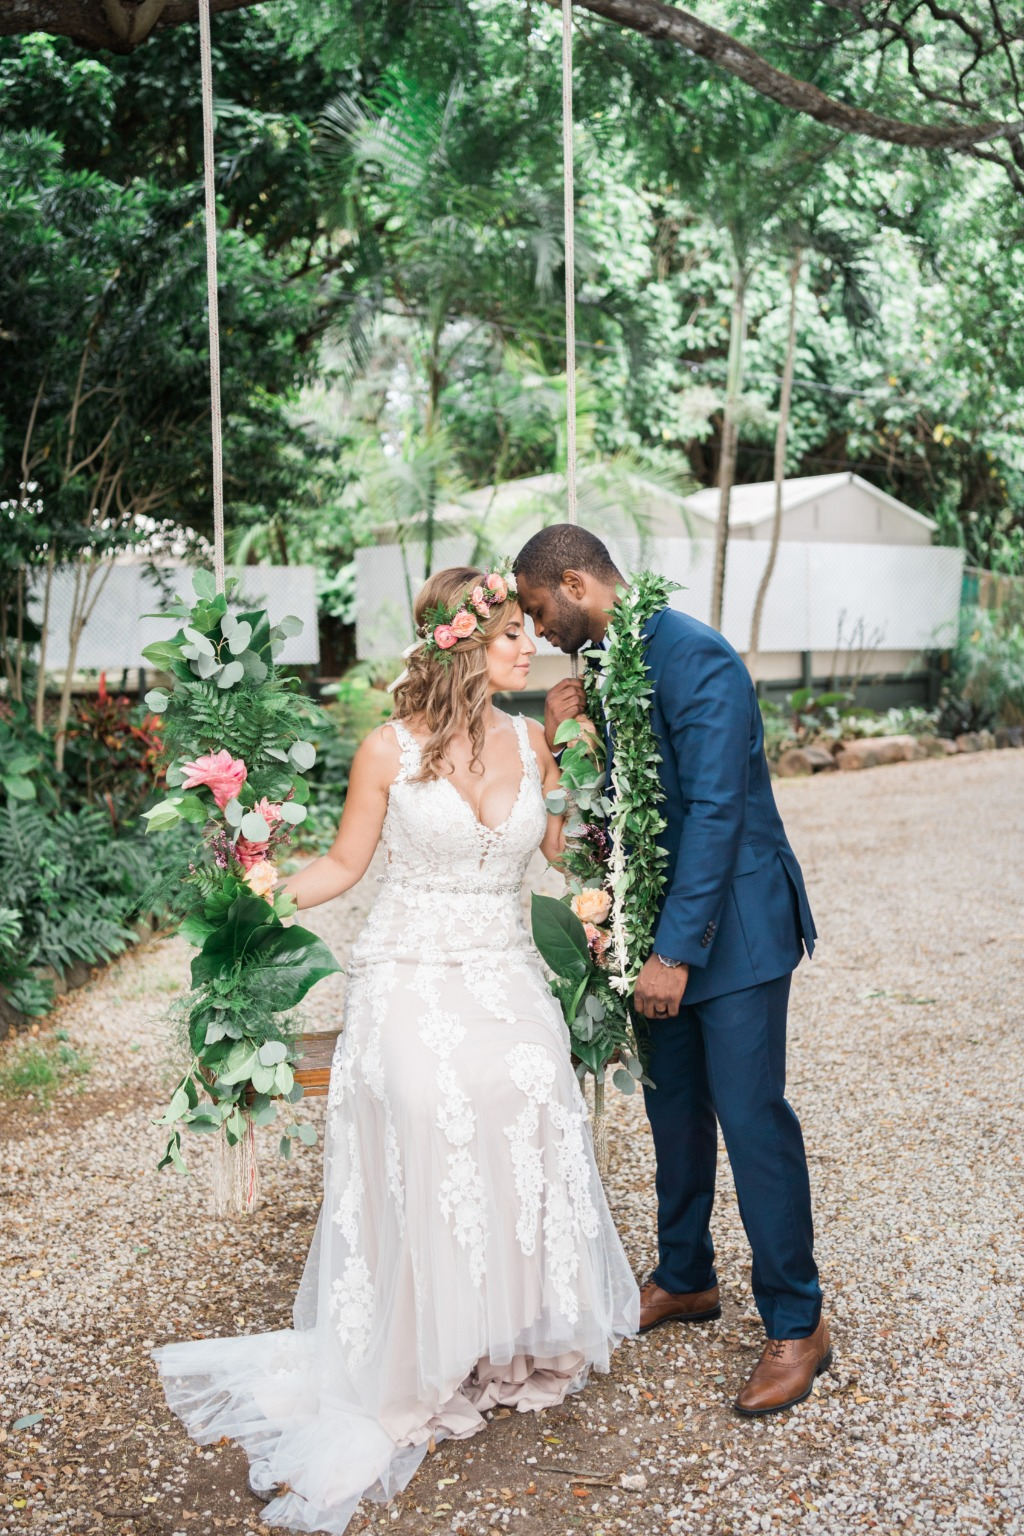 Briana and Wilrey got married at Loulu Palm Estate on the North Shore near Haleiwa on Oahu, Hawaii! This swing adorned in flowers